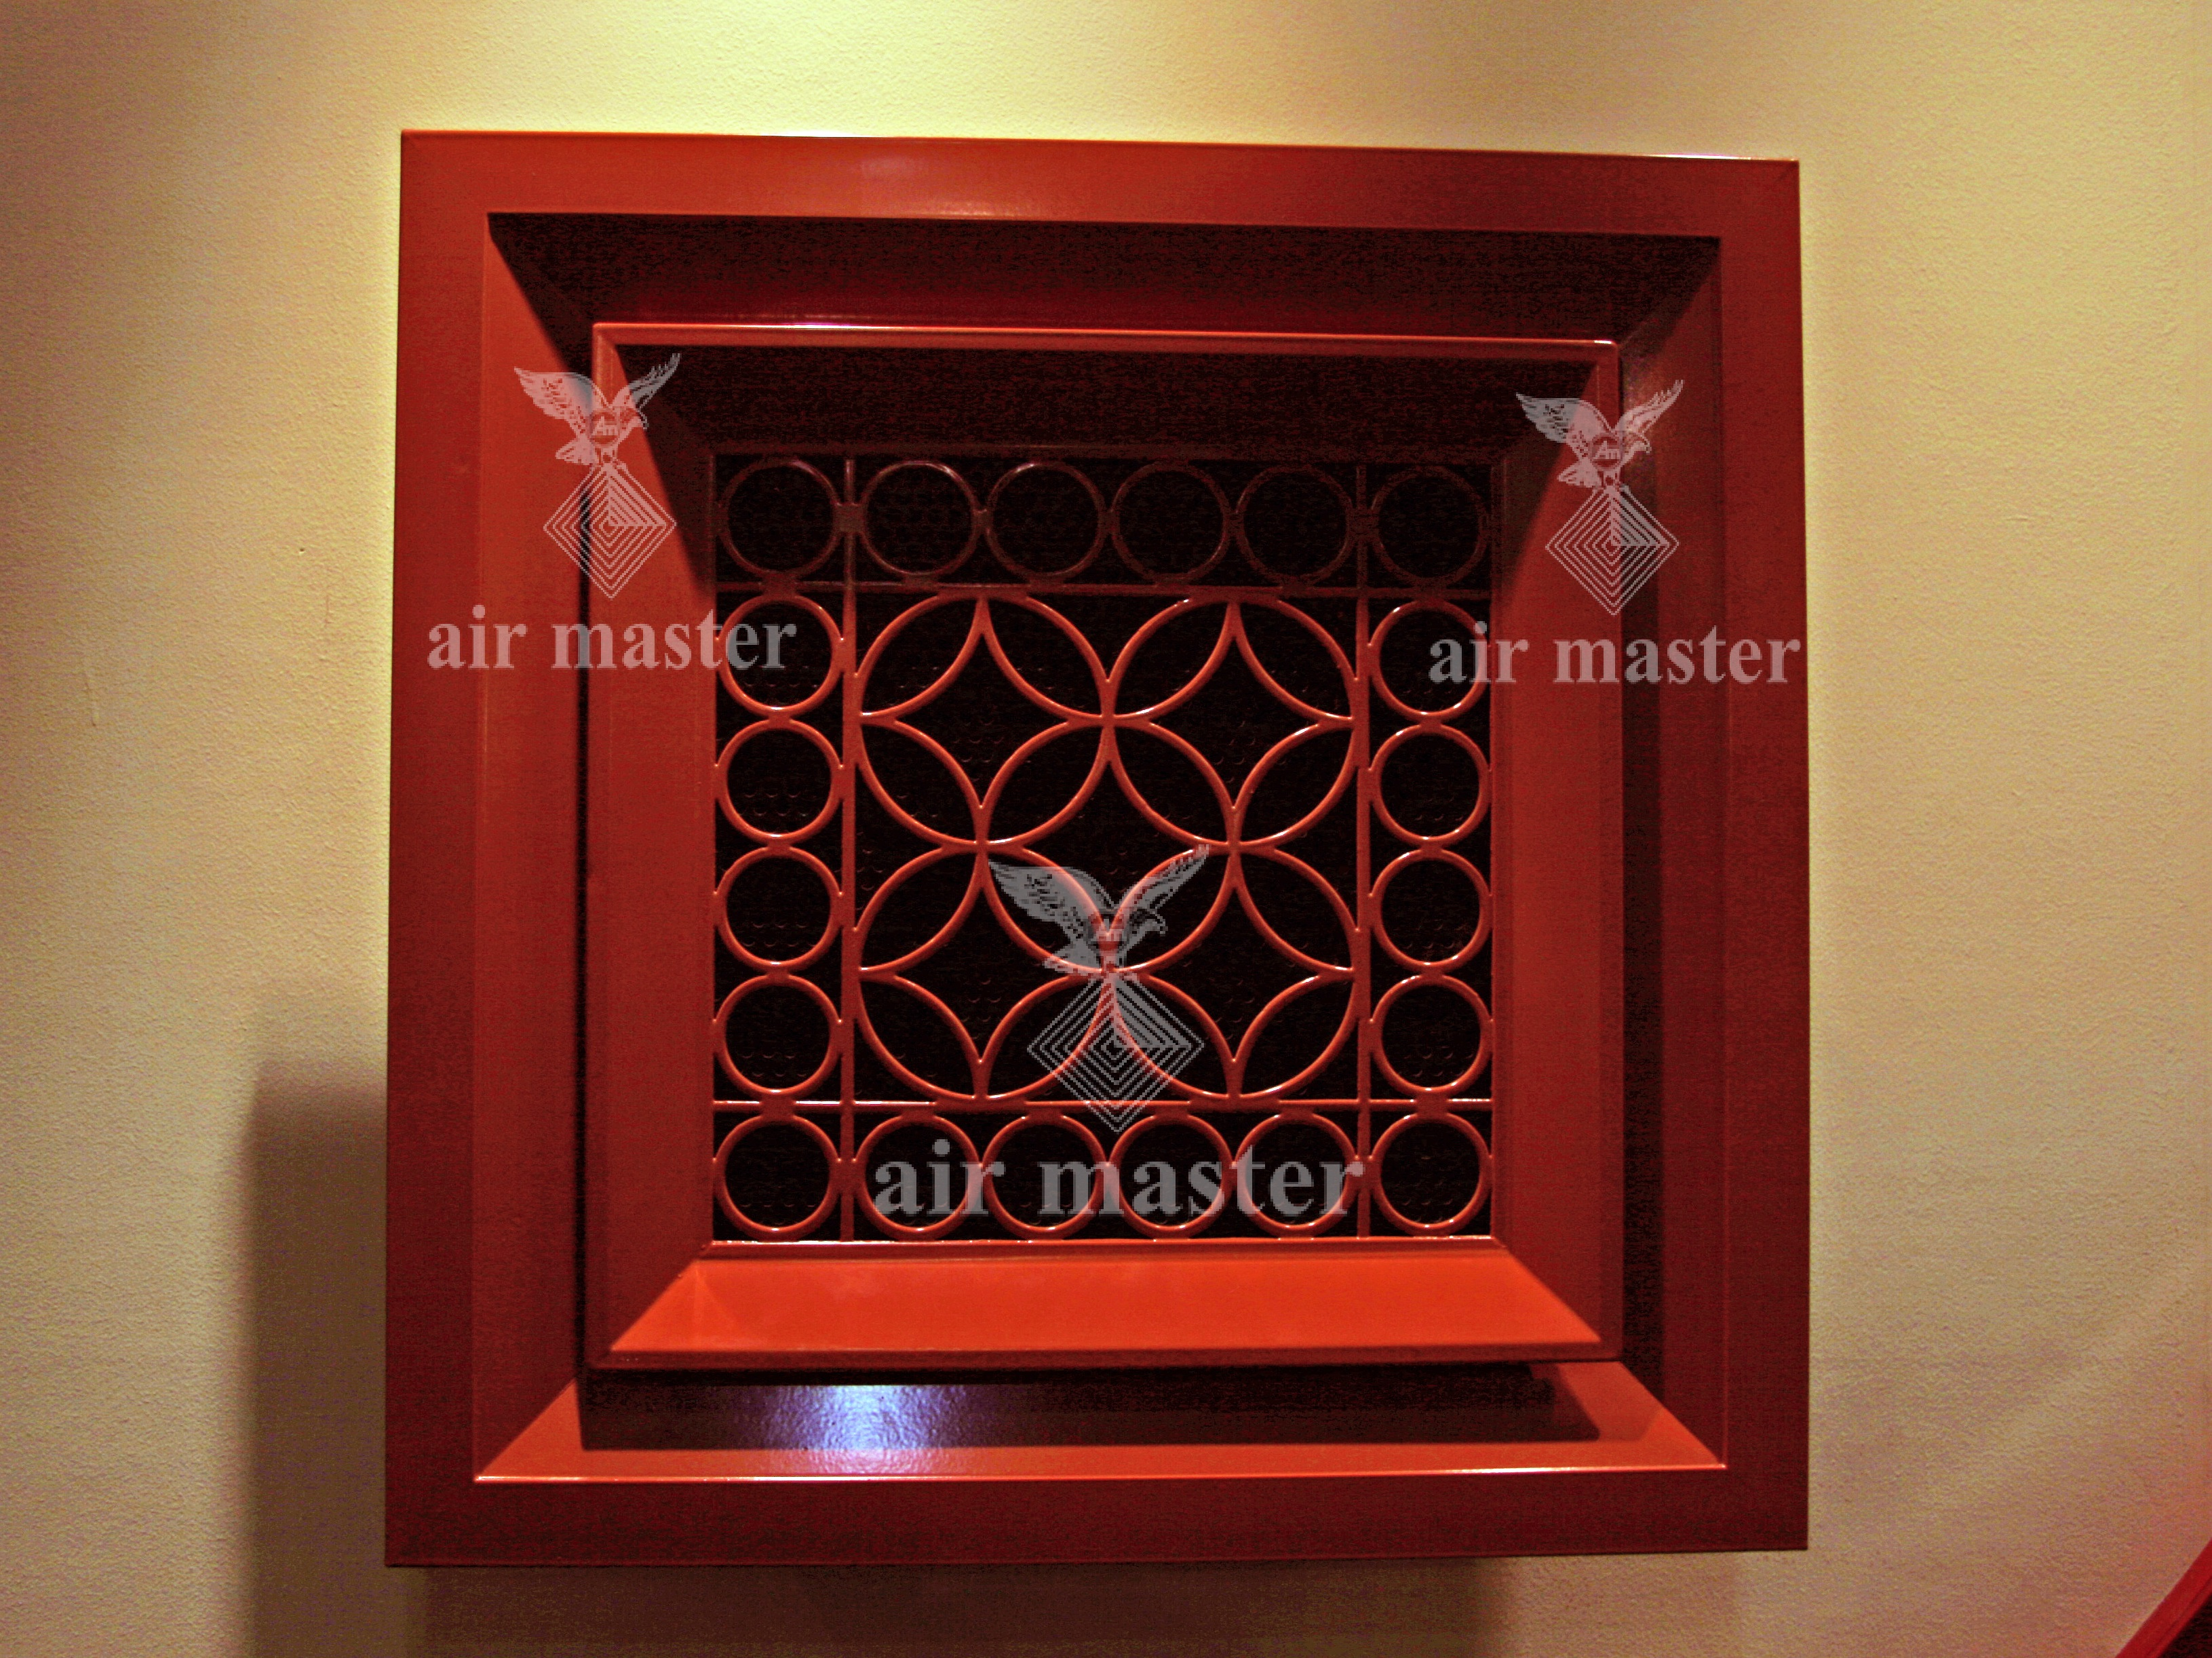 Airmaster emirates decorative grilles hvac